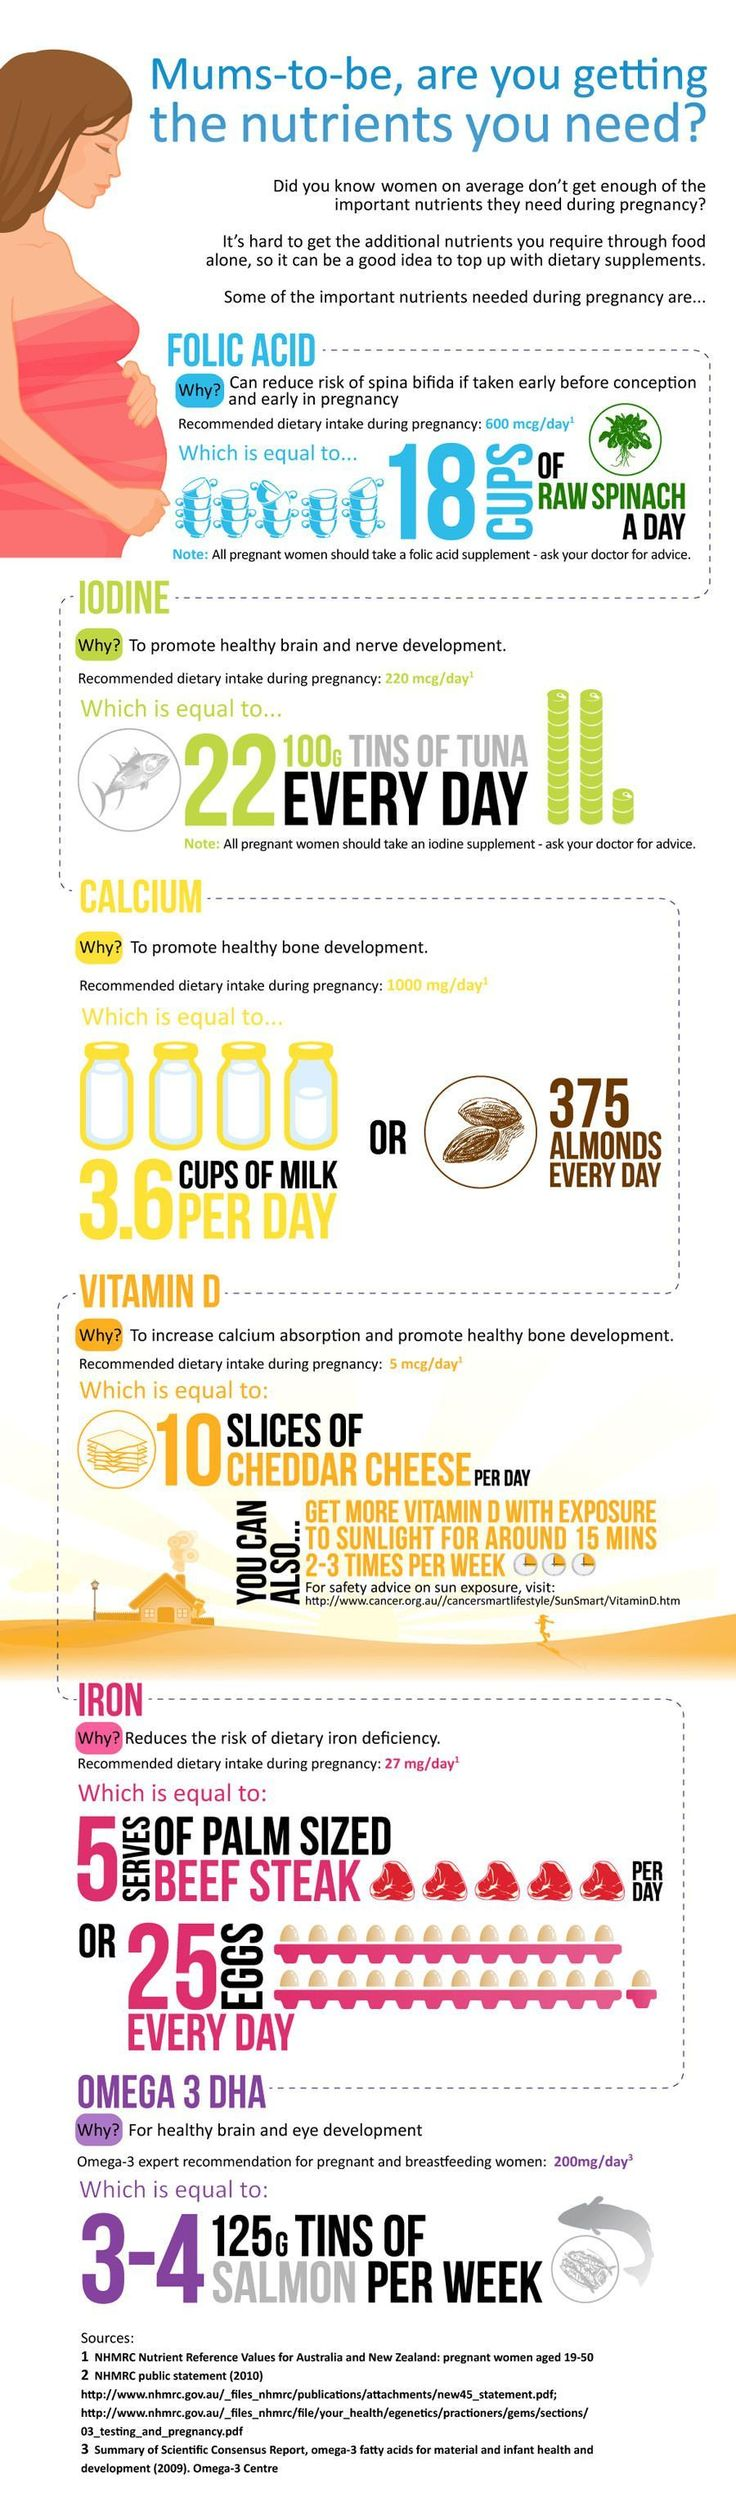 Interesting Facts On Pregnancy Nutrition Infographic - Good Info - Be Sure Organic is chosen whenever possible and Tuna may not be the best option when looking at heavy metal content. Here are some tips on Iodine supplementation: http://natural-fertility-info.com/iodine-preconception-and-pregnancy-health.html